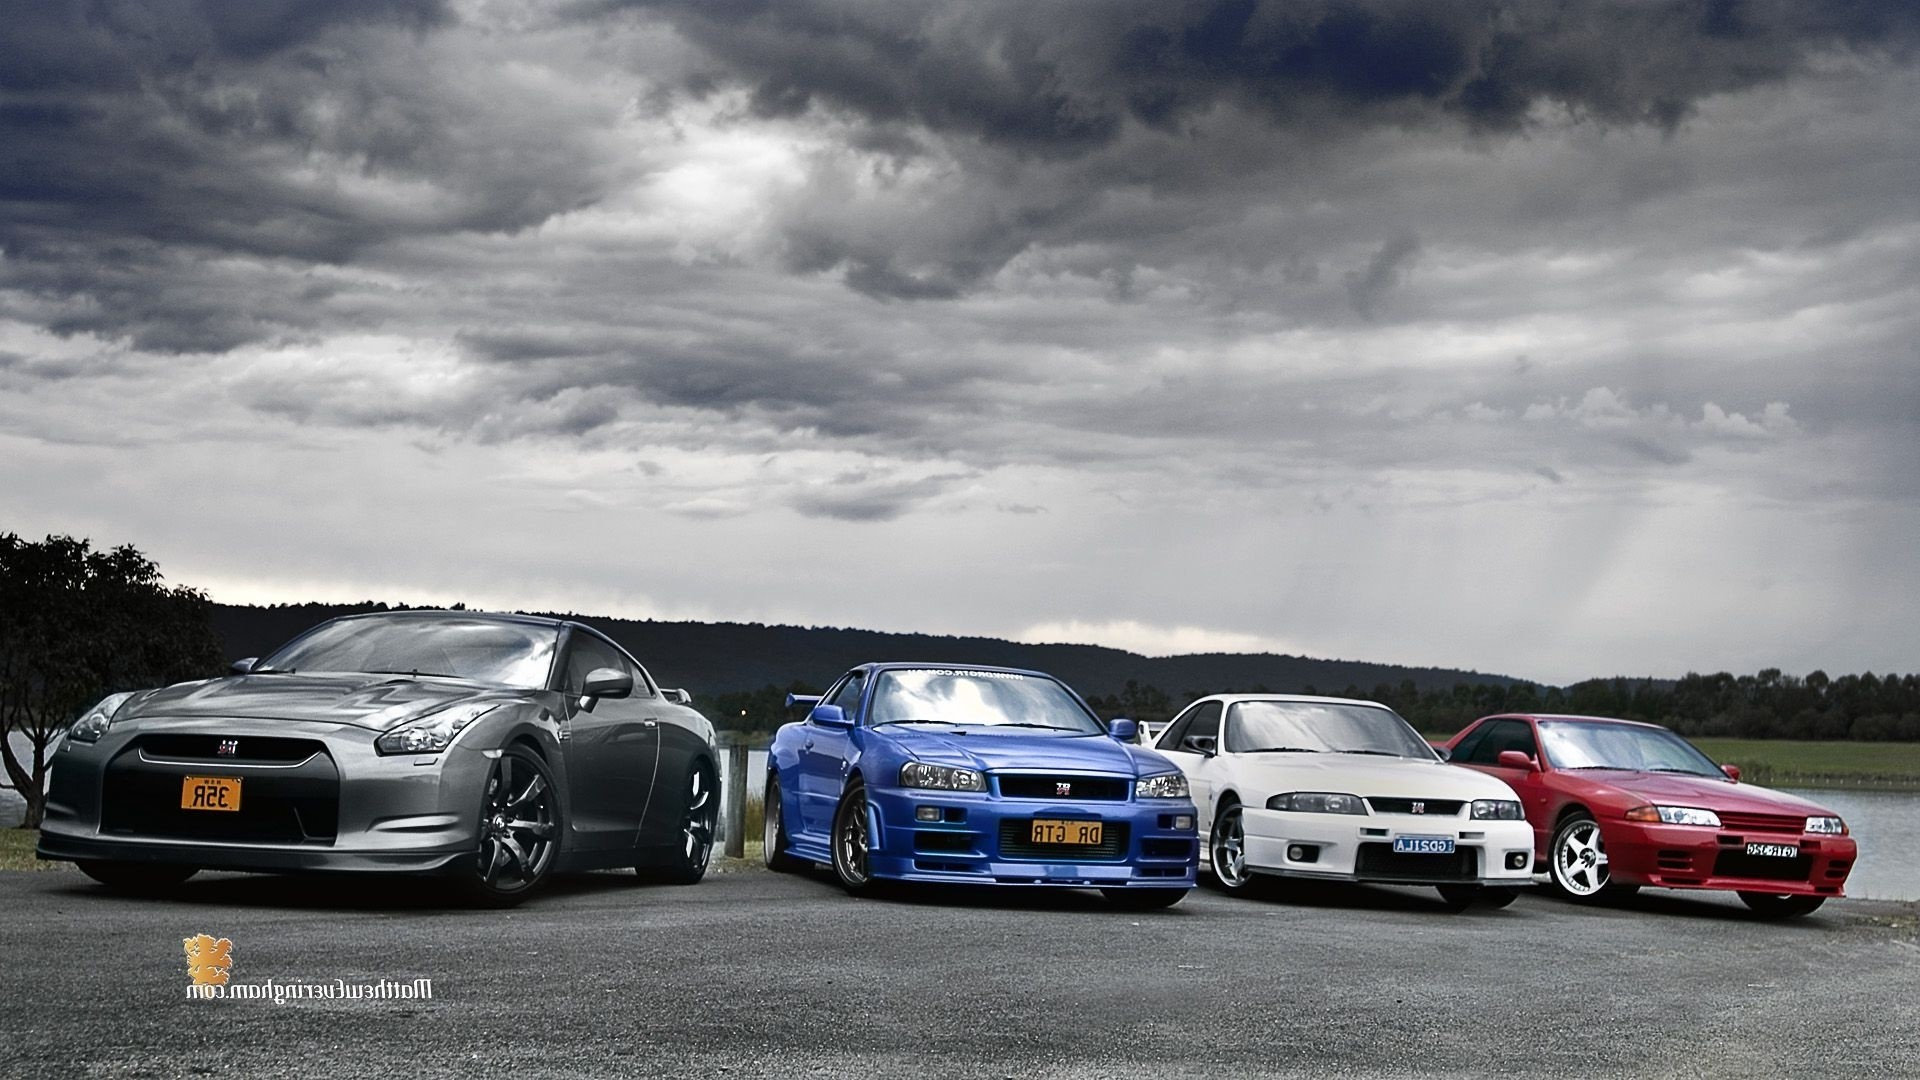 Skyline R Wallpapers Group 800aƒ 500 Nissan Skyline Nissan Gtr R34 Wallpaper 4k 1920x1080 Download Hd Wallpaper Wallpapertip